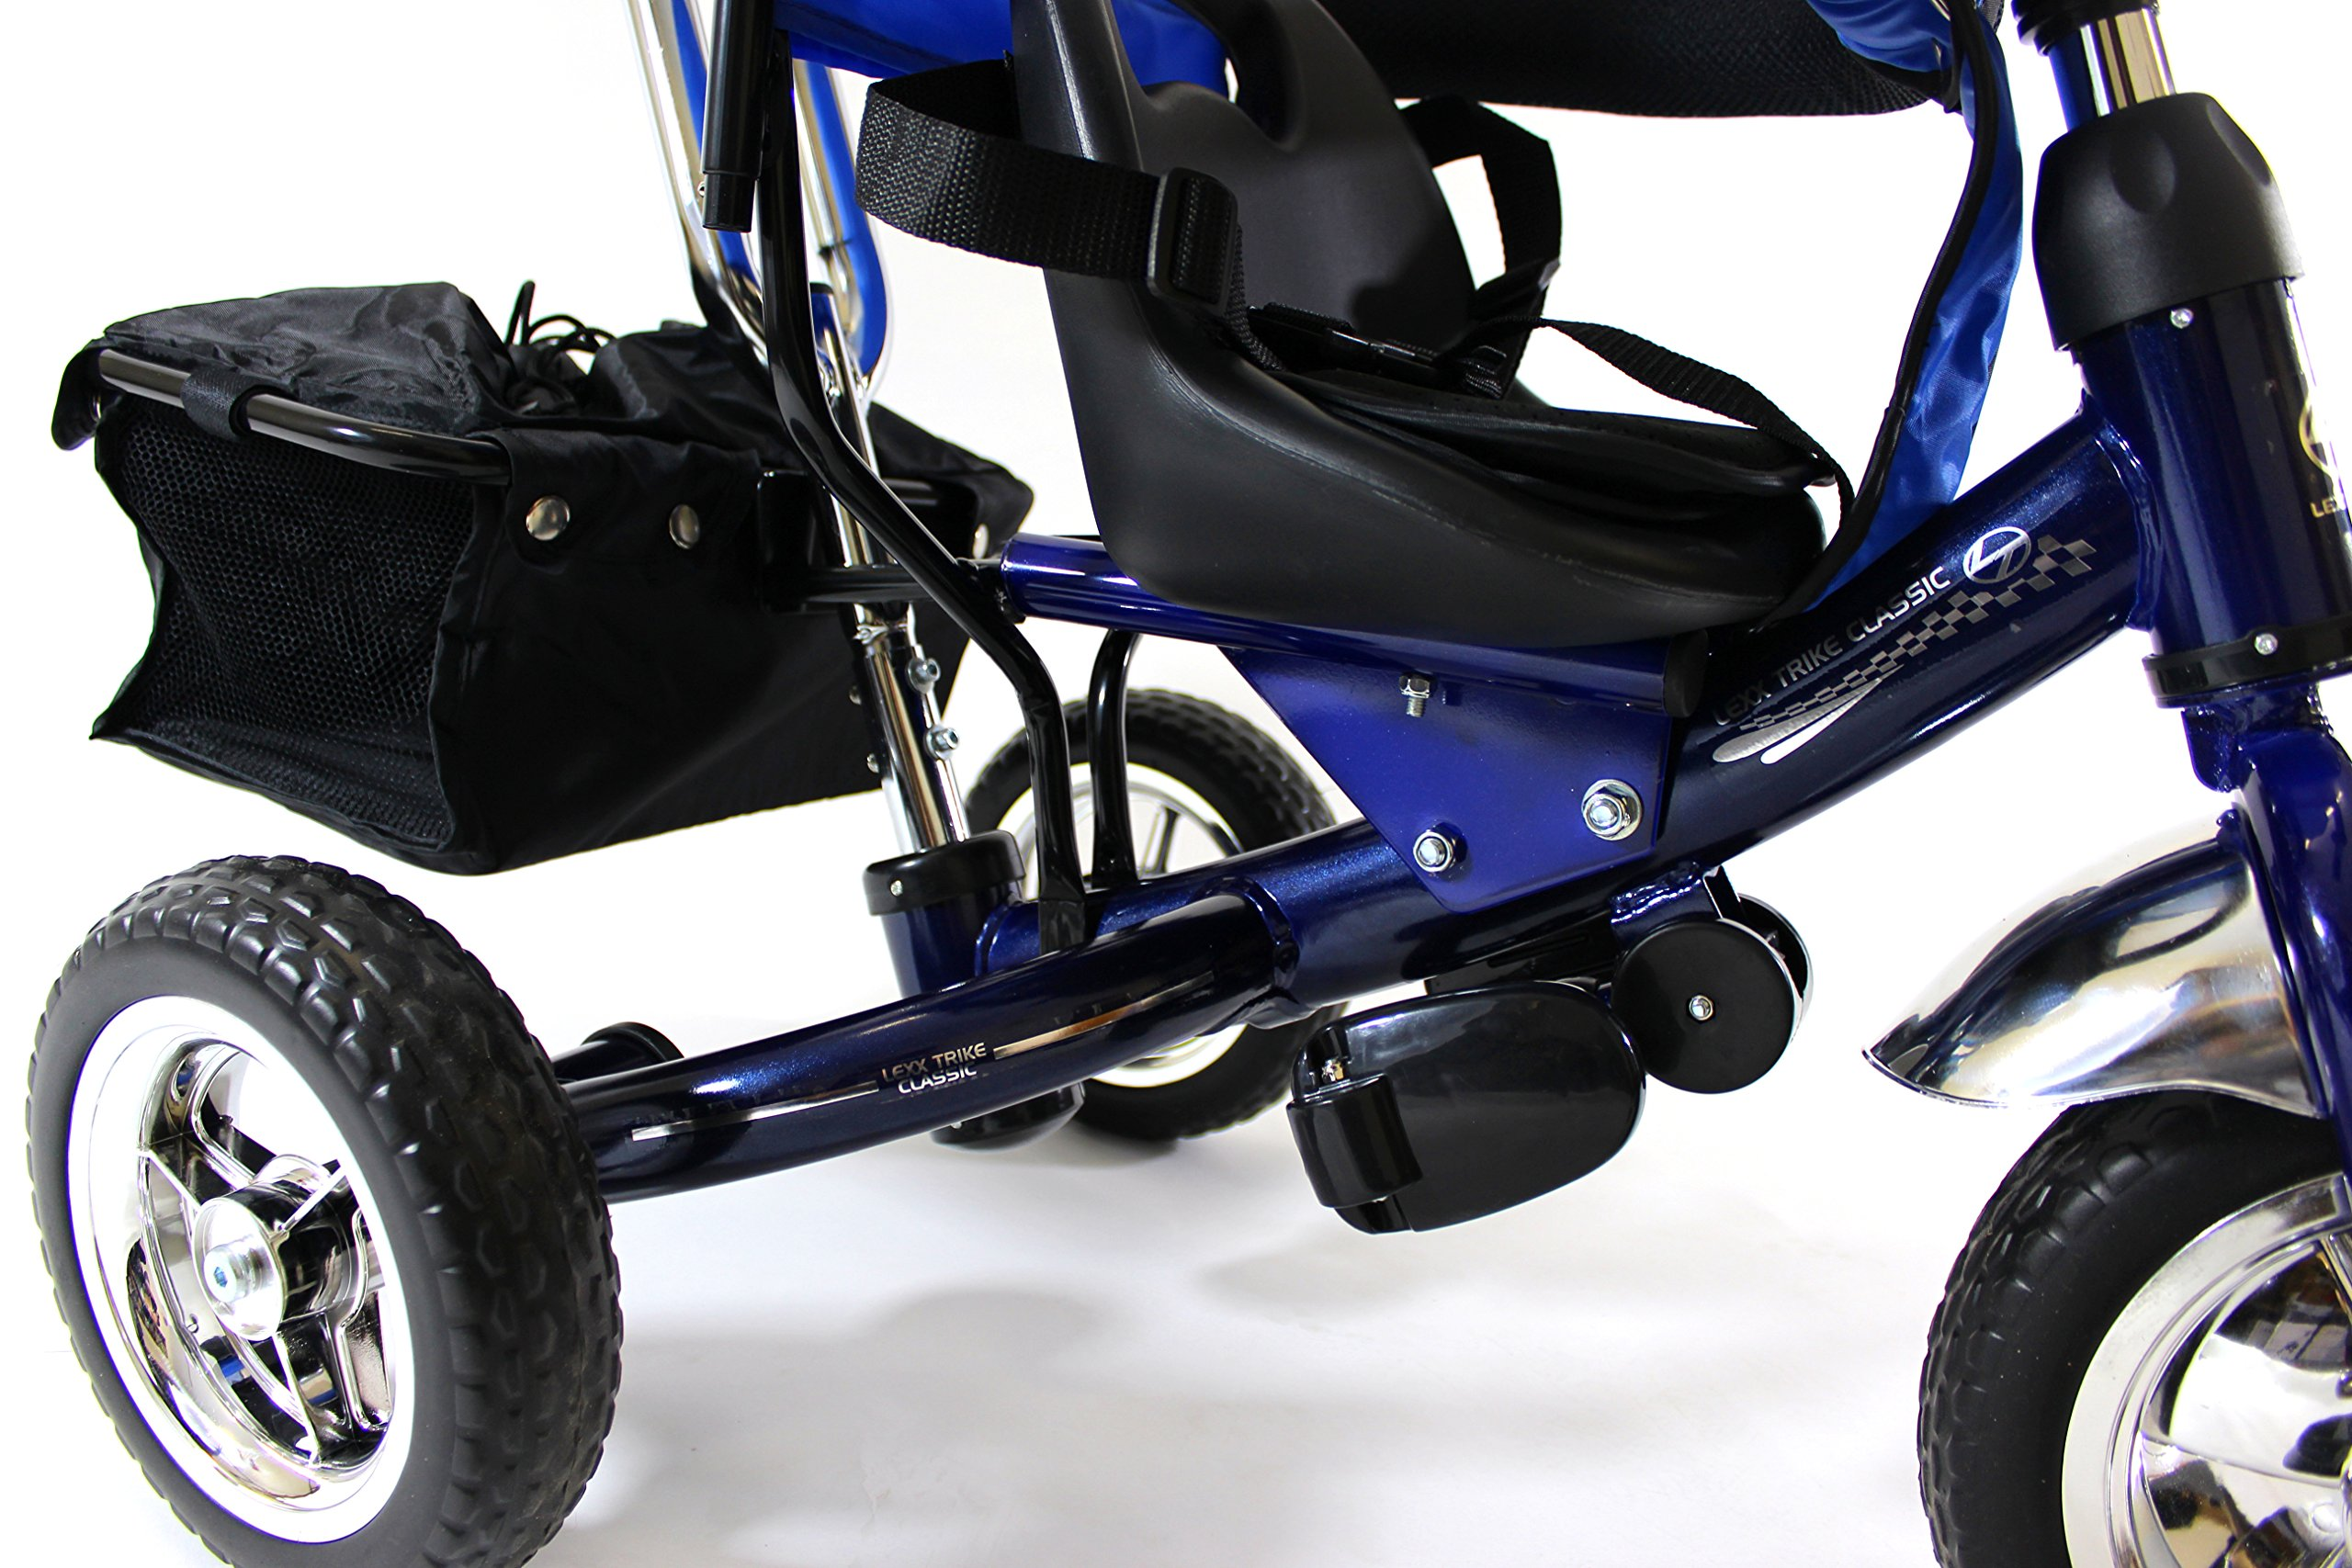 4in1 Lexx Trike Classic Smart Kid's Tricycle 3 Wheel Bike Removable Handle & Canopy NEW BLUE by Lexx Trike (Image #2)